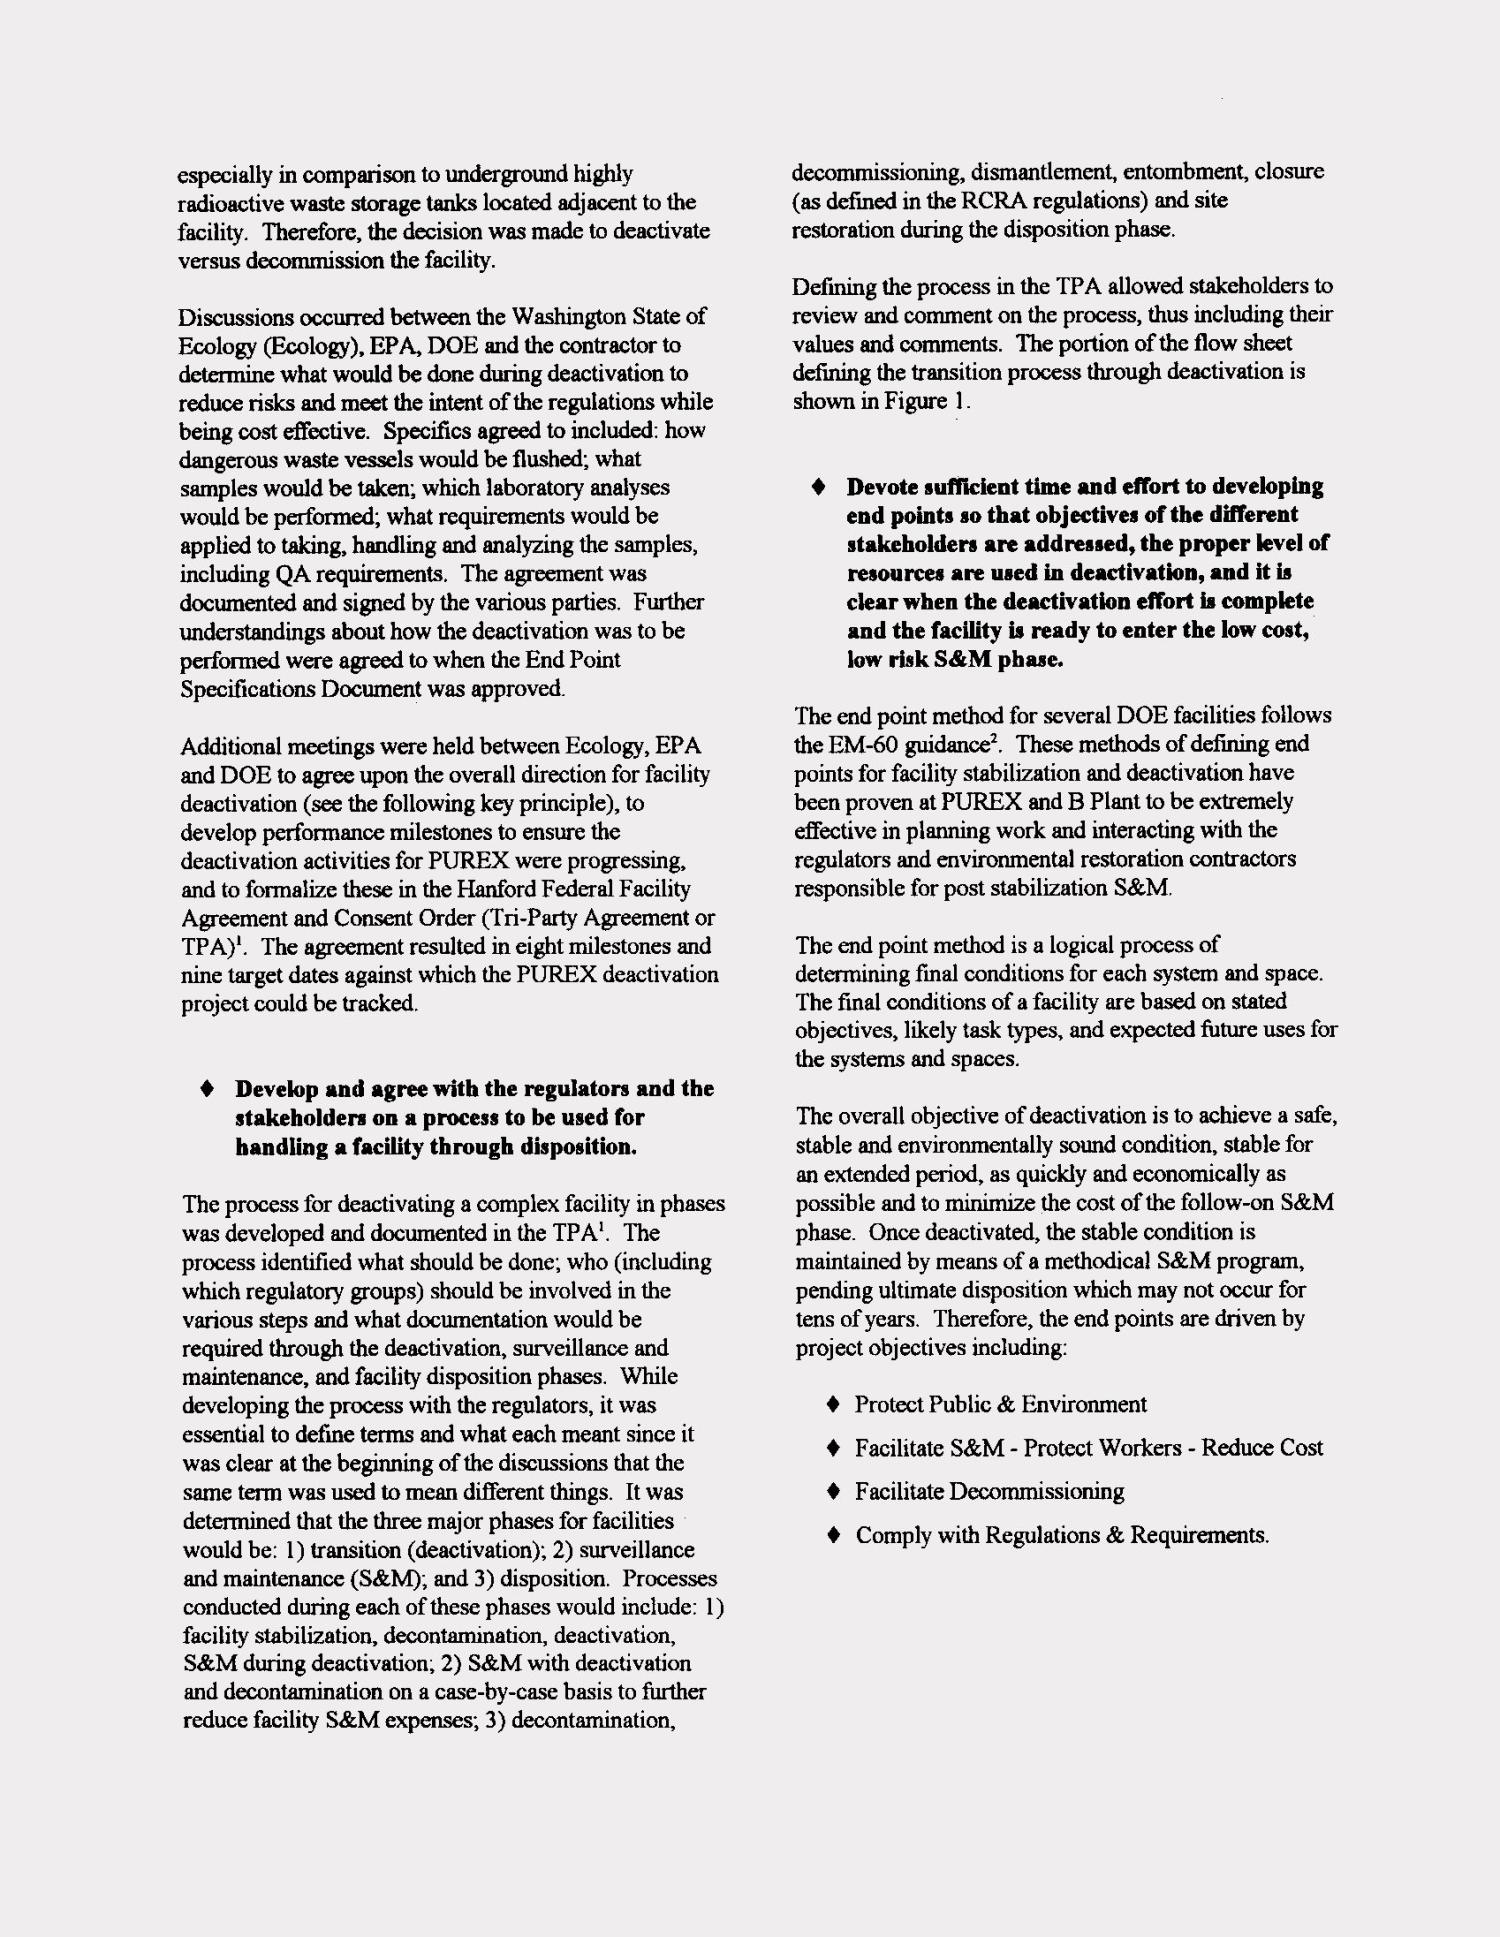 Implementing RCRA during facility deactivation - Page 8 of